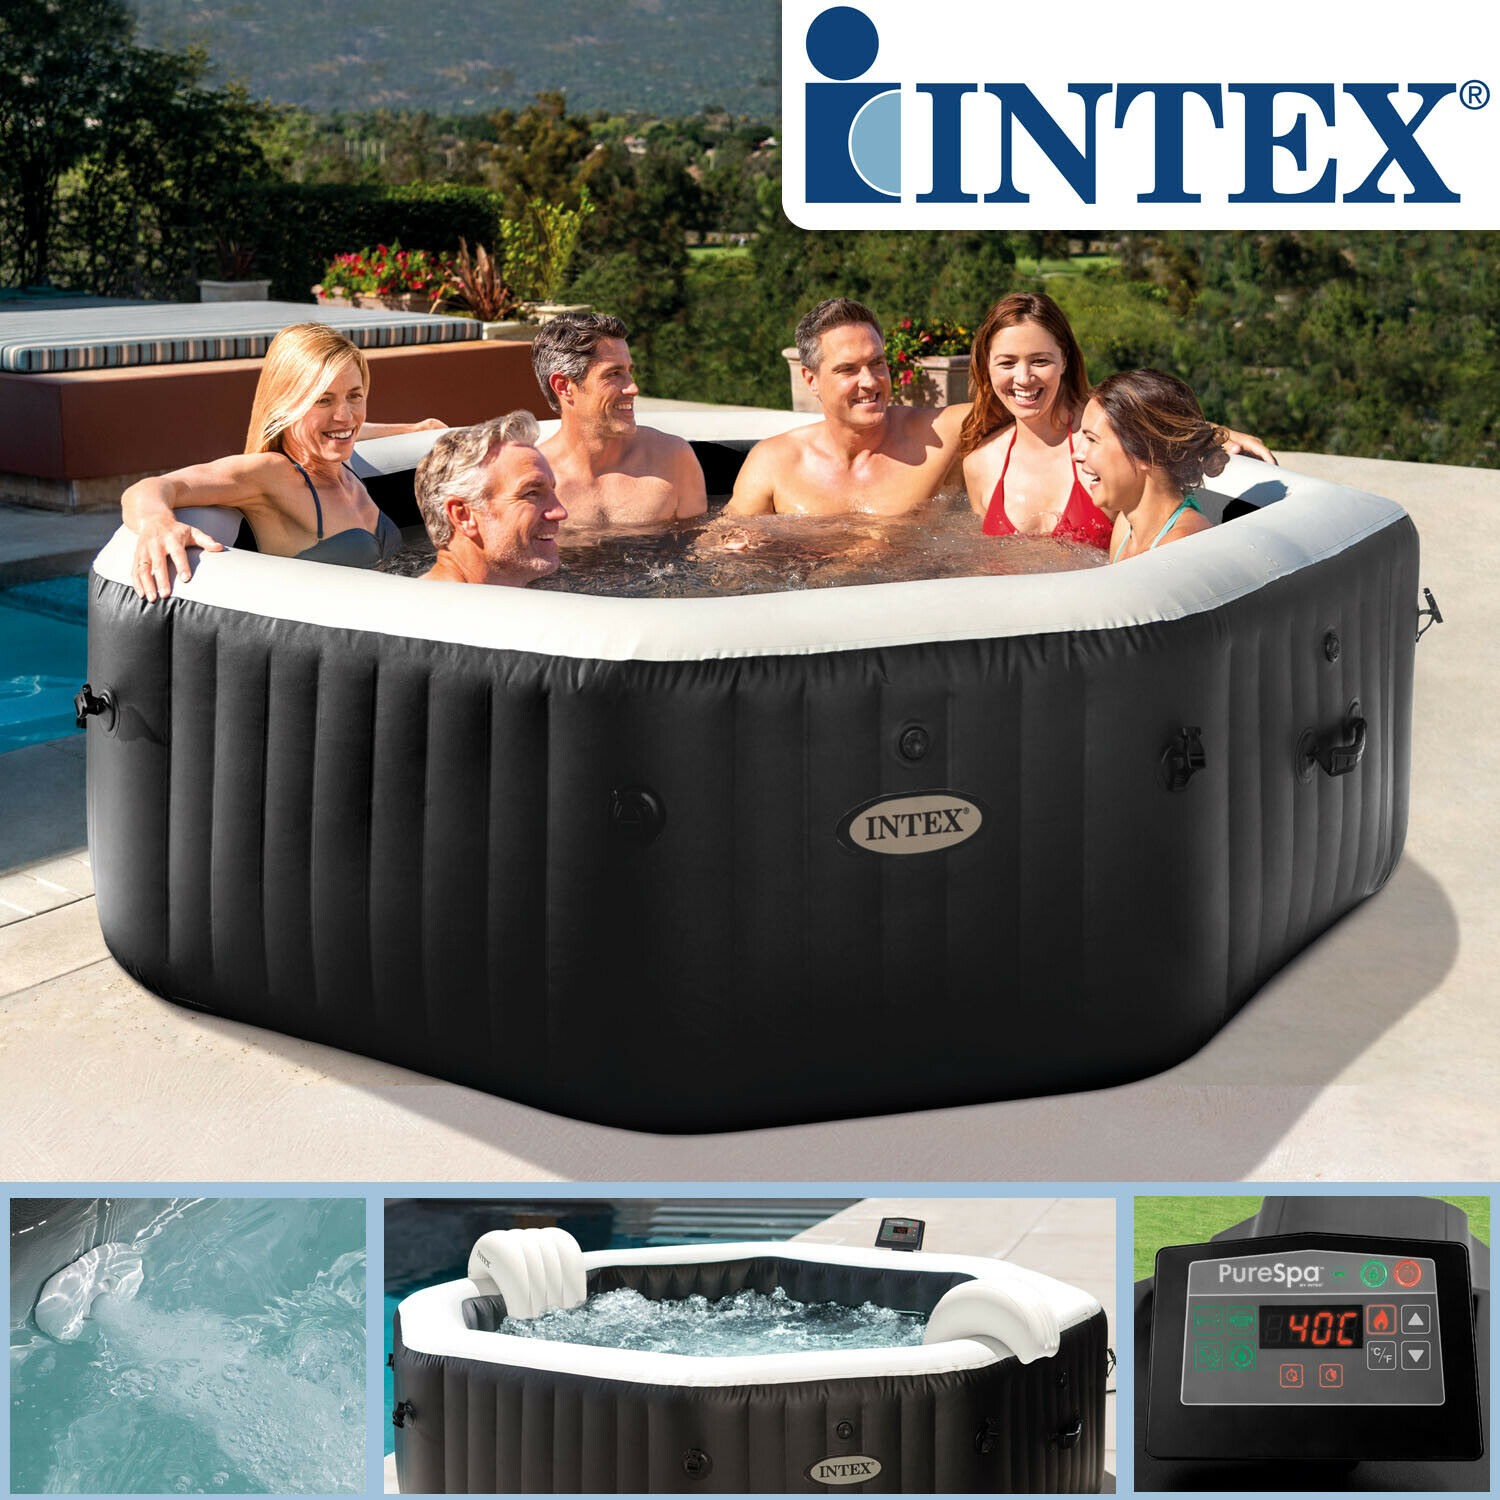 intex 128456 whirlpool spa 218x71cm pool badewanne badewanne whirlwanne eur 879 00 picclick de. Black Bedroom Furniture Sets. Home Design Ideas